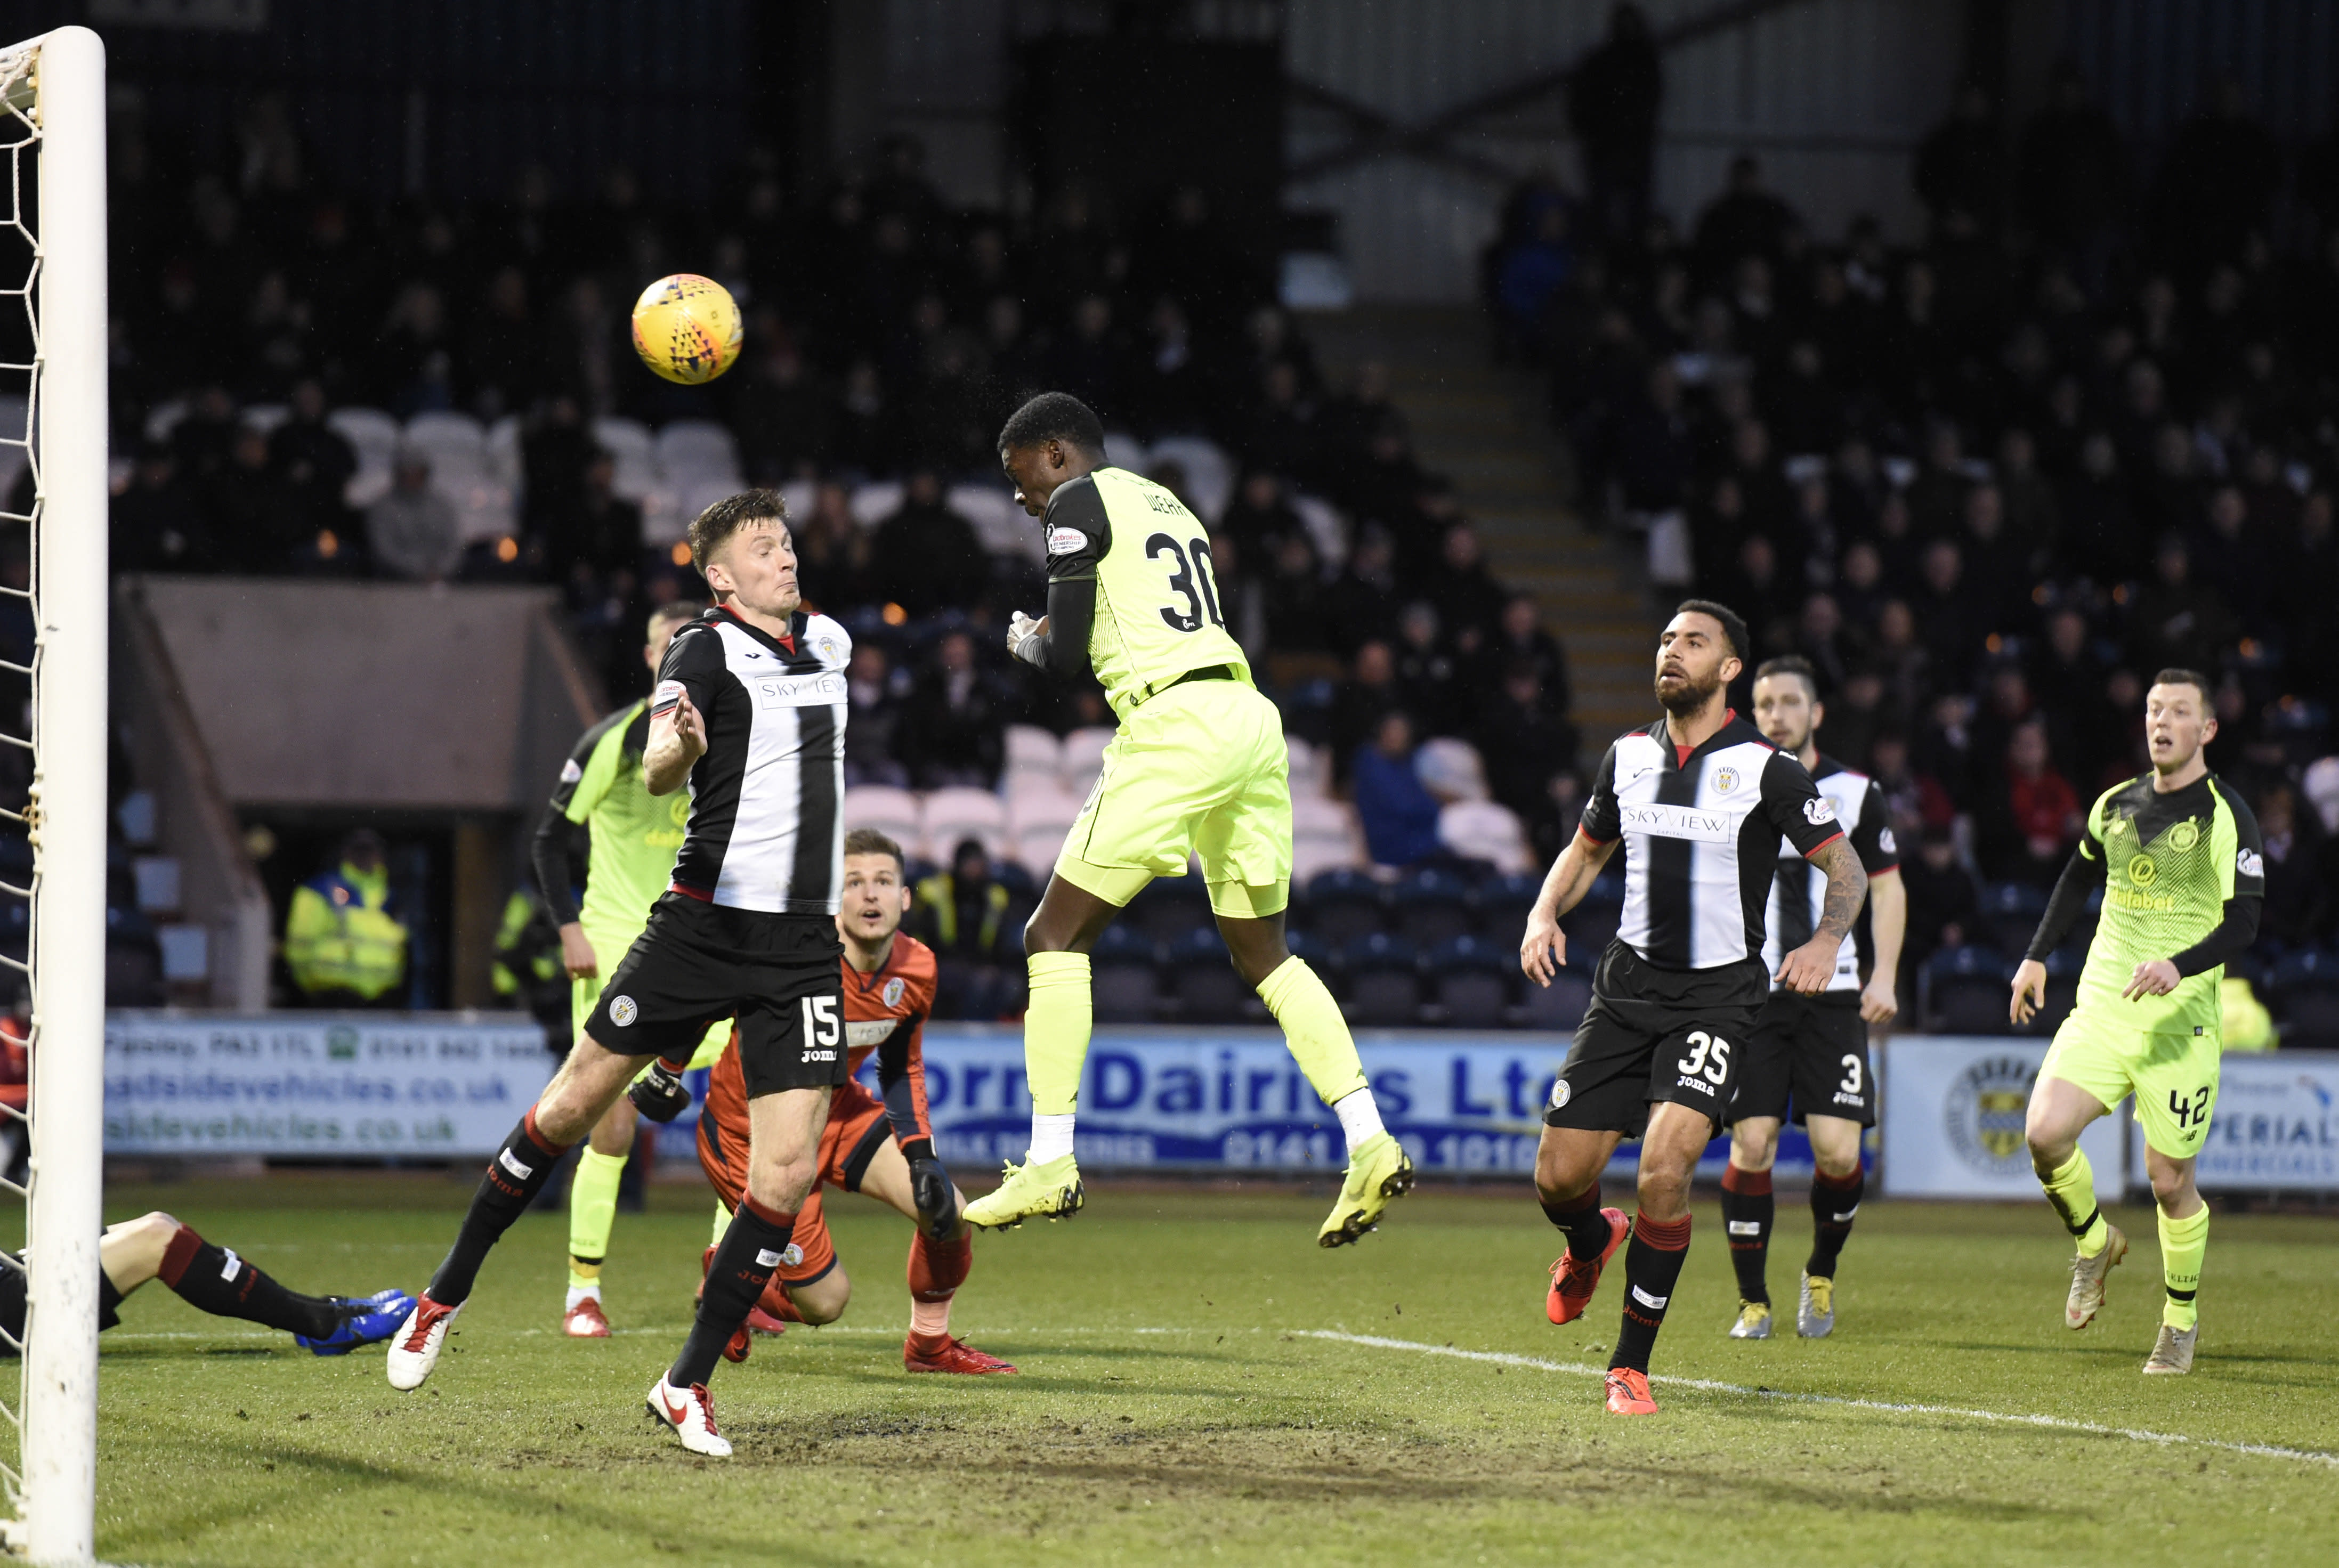 Celtic's Timothy Weah scores his side's first goal of the game during the Scottish Premier League soccer match against St Mirren Wednesday April 3, 2019. American forward Tim Weah scored in his first start in two months, helping Celtic win 2-0 at St. Mirren in the Scottish Premier League. (Ian Rutherford/PA via AP)